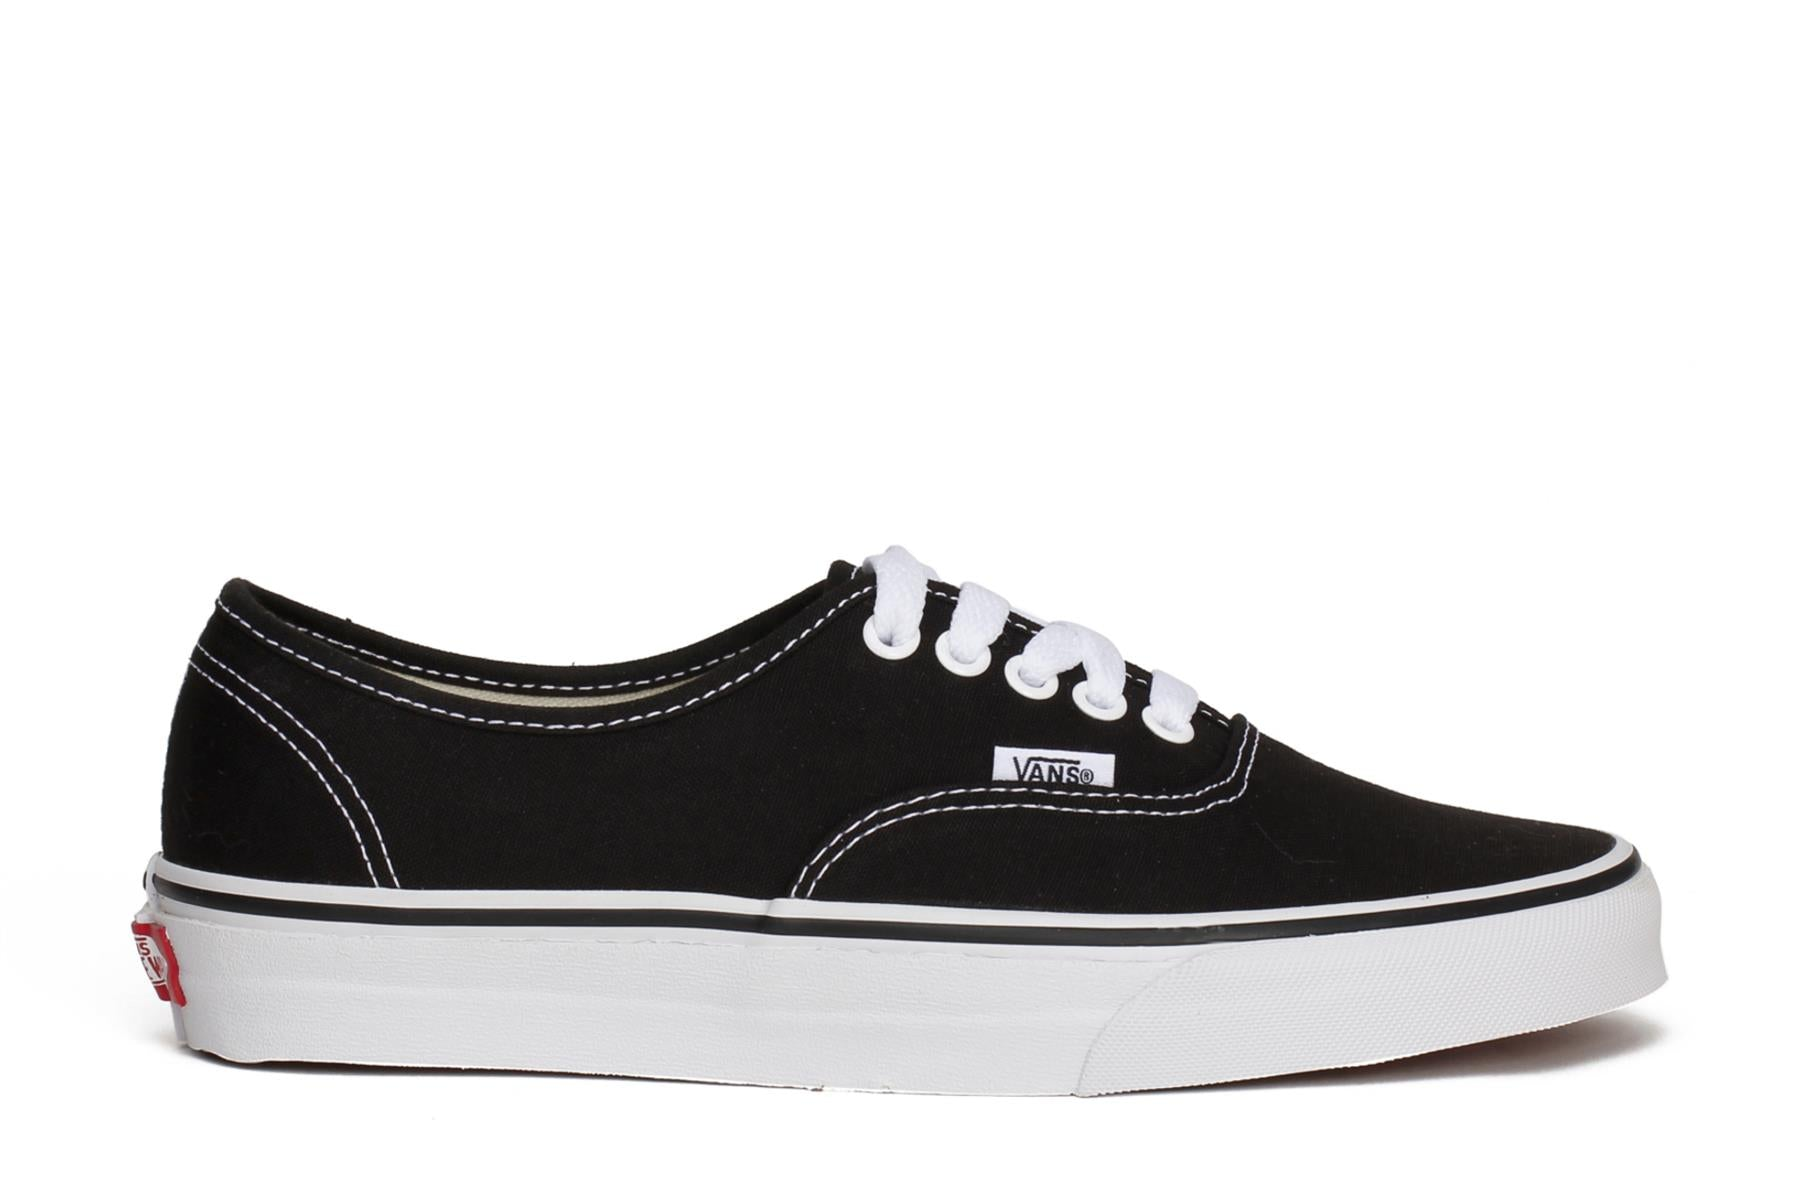 vans-unisex-authentic-skate-sneakers-black-canvas-main